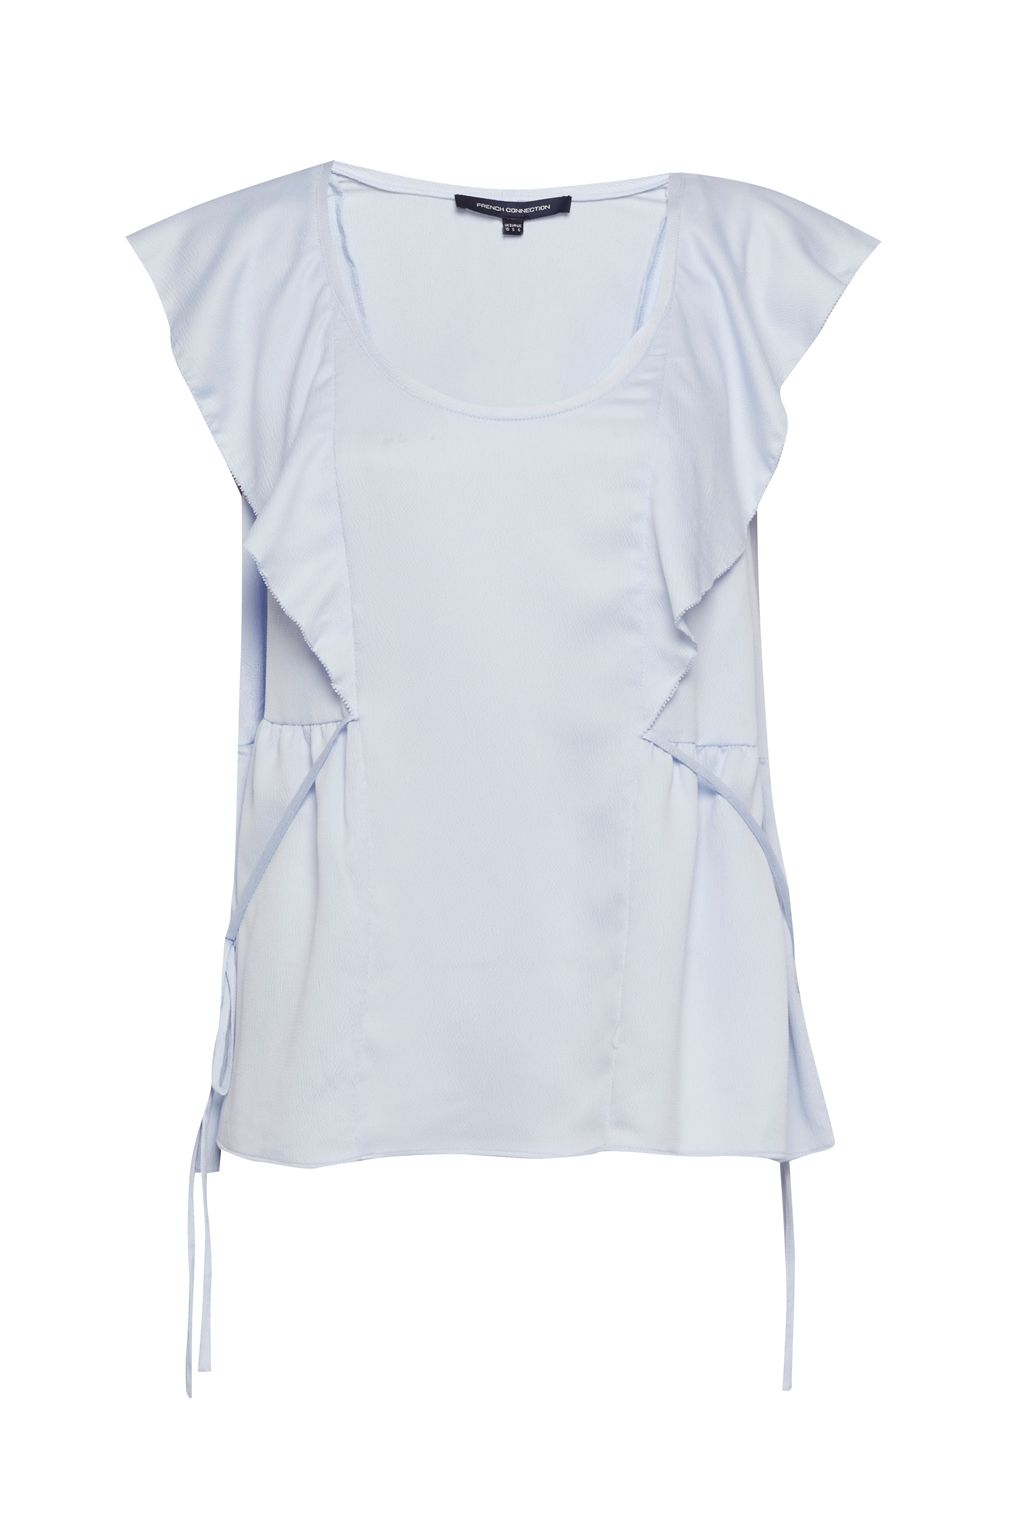 French Connection Nia Crushed Satin Draped Top, Blue